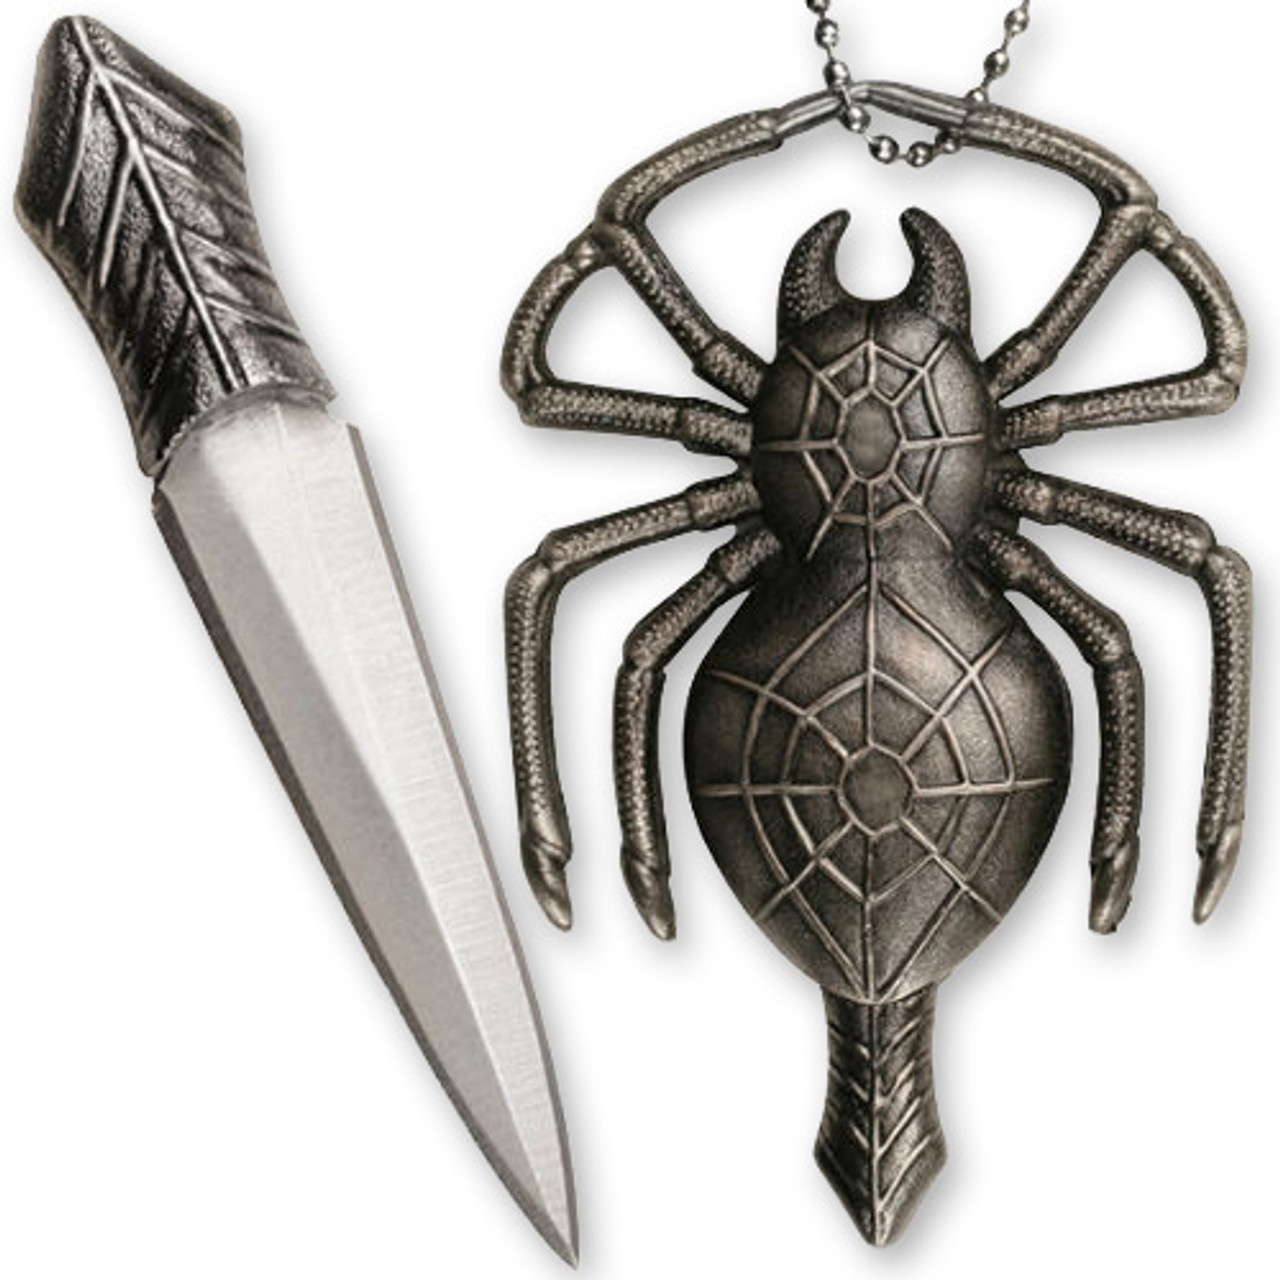 Deadly Spider Neck Knife Necklace Pendant w Ball Chain 2.25in Knife All Metal